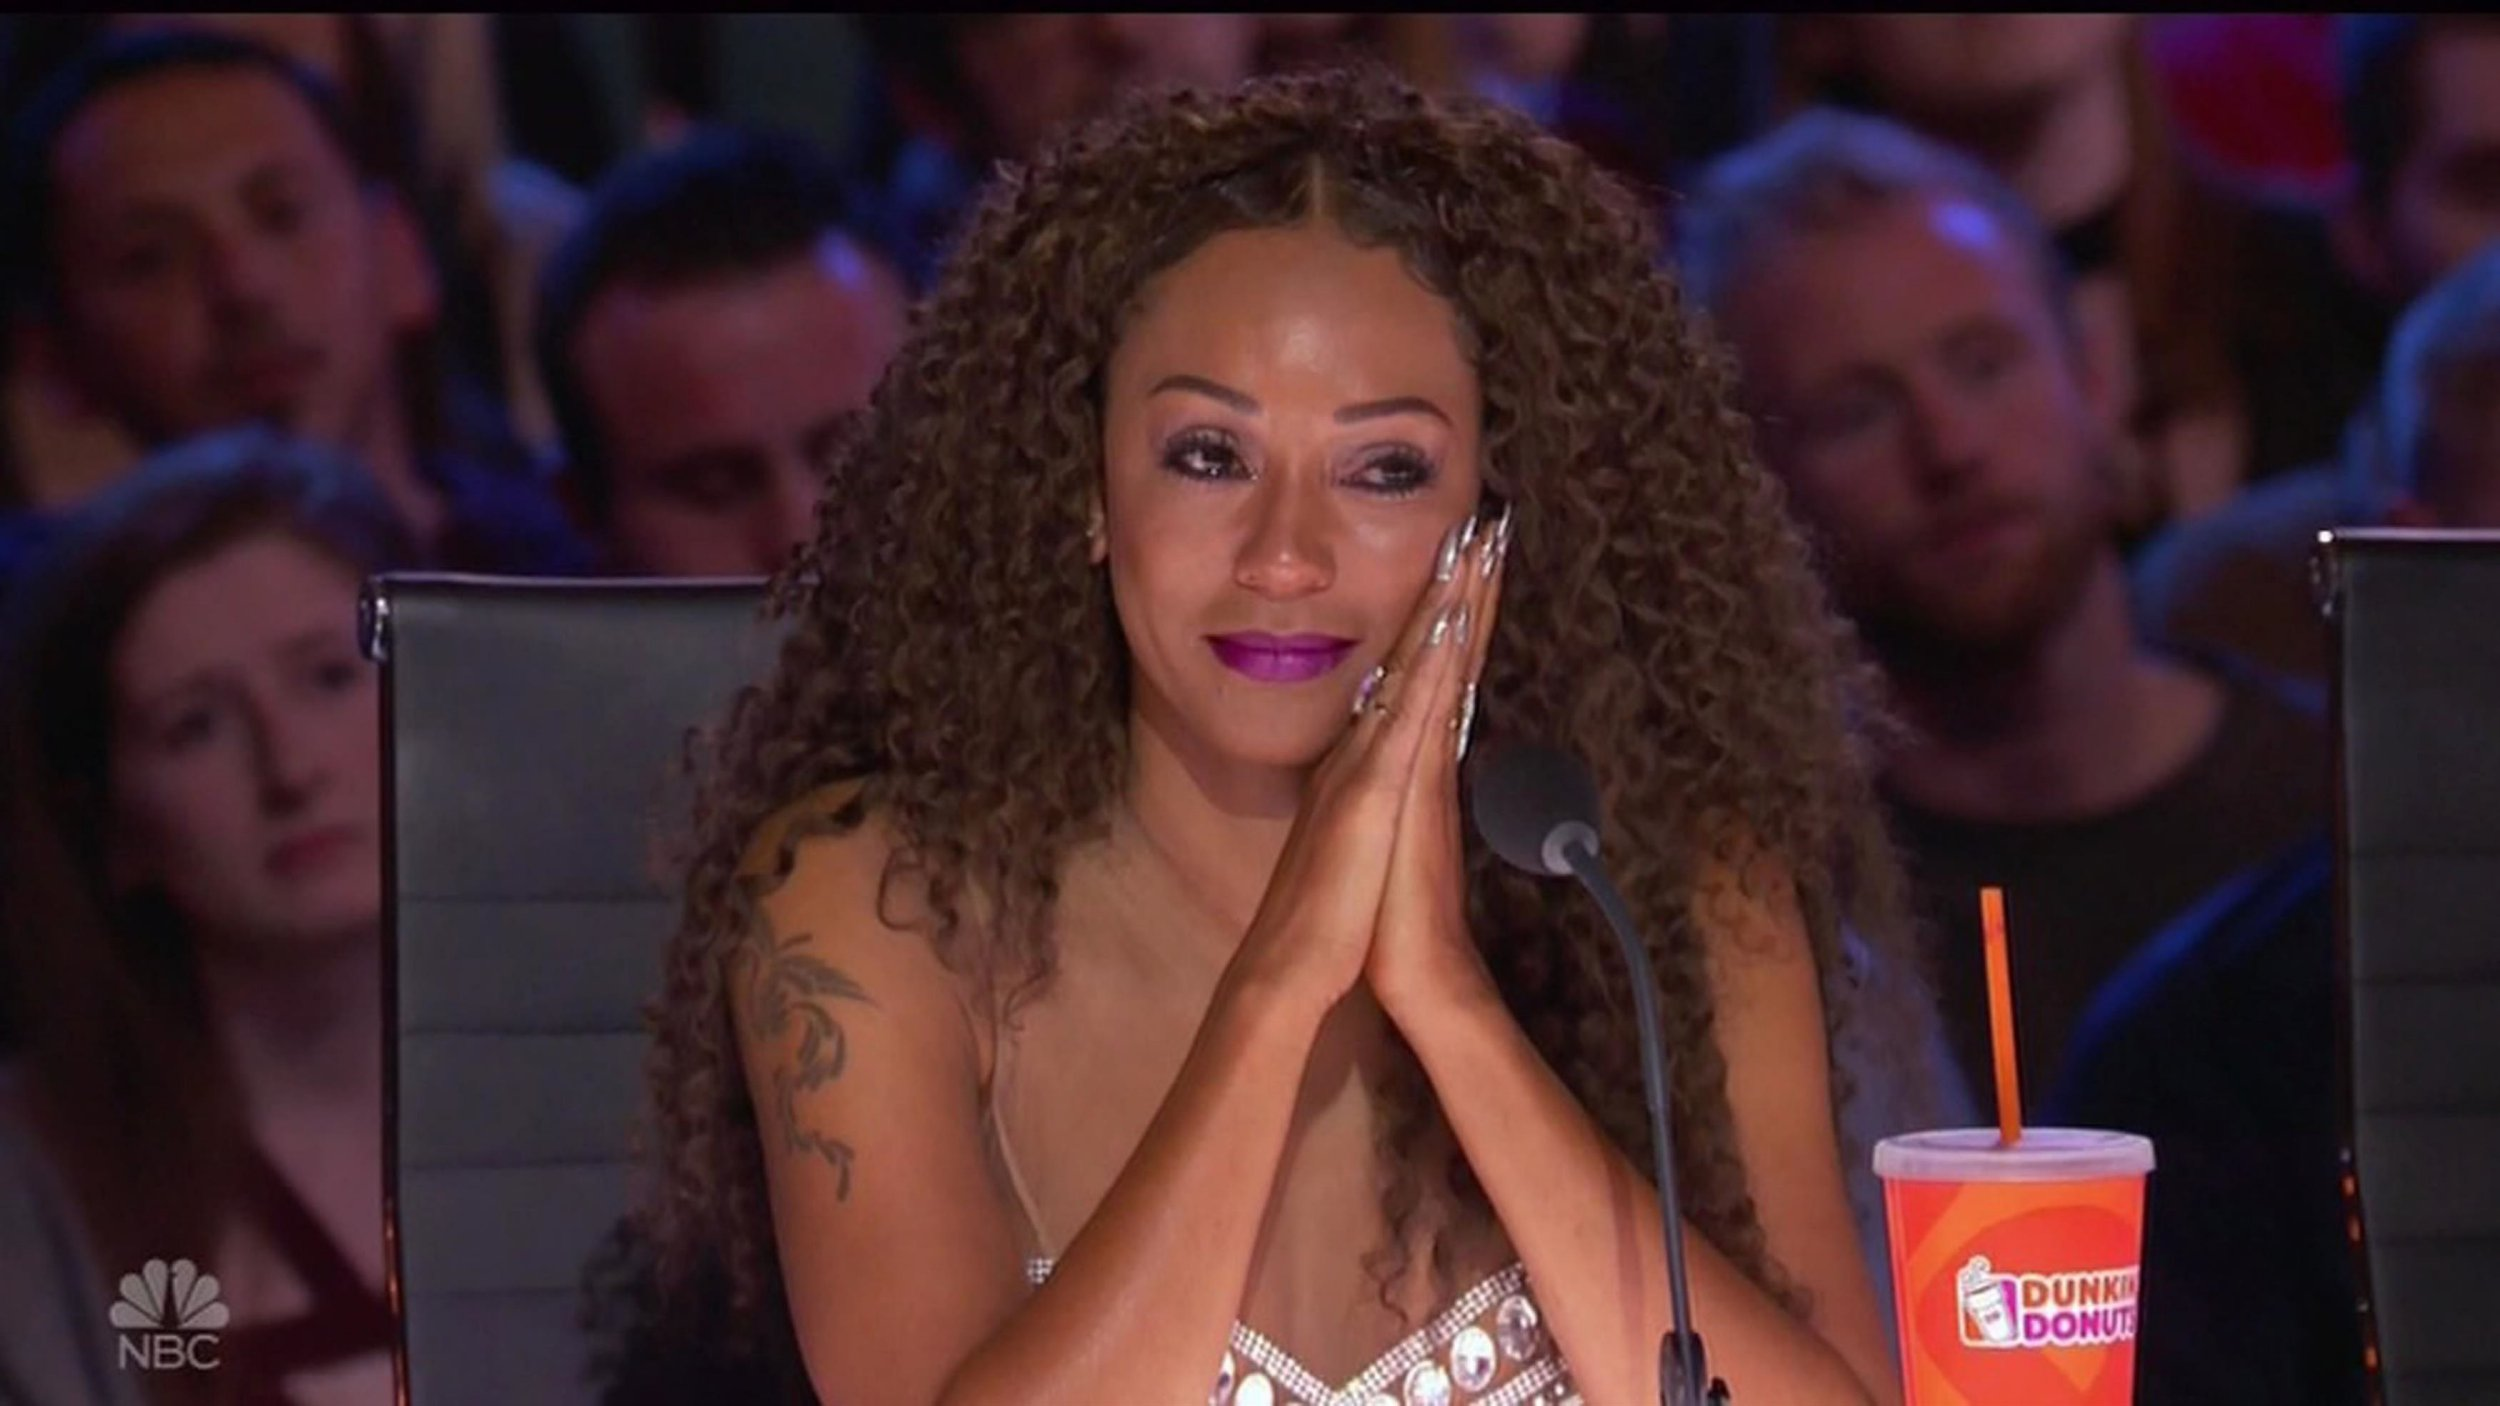 "BGUK_1274426 - ** RIGHTS: WORLDWIDE EXCEPT IN UNITED STATES ** Los Angeles, CA - Mel B chokes back tears during America's Got Talent audition by transgender singer Brody Ray. Brody left Mel B with tears in her eyes during his powerful performance about his transformation. Bearded crooner Brody, from Nebraska, had already moved the judges with his story of 'struggles and battles' growing up as a girl named Natalie until transitioning in 2010, saying: ""It was the start of my life."" He then left the audience enthralled and earned a huge ovation with his performance of Jordan Smith's Stand In The Light, clearly relating to his own story as he sang: ""This is who I am inside, this is who I am and I'm not gonna hide??? just stand in the light and be seen as we are."" Brody, a home care helper for people with special needs, burst into tears at the overwhelming response, including all four judges standing for ovation, telling them: ""It's just been a long road to get here."" Former Spice Girl Mel had watched the performance with tears in her eyes and a giant smile, telling him after: ""I think your soul comes out when you sing because I can actually feel and hear your passion."" Howie Mandel told Brody he had 'a really amazing story that's inspirational,' and clearly moved Brody again when he referred to the lyrics and told him: ""You're right now standing in the light."" Simon Cowell also called him 'inspirational,' and insisted: ""You've got an amazing voice. I really like you, you're a great guy."" Recommending he take on his own material rather than covers, he predicted: ""I actually think you could be a force to be reckoned with, I do."" Heidi Klum had a similar message, calling him 'absolutely incredible' and stressing: ""Everyone was on their feet - you're going to go very, very far I think."" Brody punched the air with joy at the response, and had more tears as host Tyra Banks hugged him backstage and told him: ""I'm just so happy for you."" *BACKGRID DOES NOT CLAIM ANY COPYRIGHT OR LICENSE IN THE ATTACHED MATERIAL. ANY DOWNLOADING FEES CHARGED Pictured: Mel B BACKGRID UK 27 JUNE 2018 BYLINE MUST READ: NBC / BACKGRID *BACKGRID DOES NOT CLAIM ANY COPYRIGHT OR LICENSE IN THE ATTACHED MATERIAL. ANY DOWNLOADING FEES CHARGED BY BACKGRID ARE FOR BACKGRID'S SERVICES ONLY, AND DO NOT, NOR ARE THEY INTENDED TO, CONVEY TO THE USER ANY COPYRIGHT OR LICENSE IN THE MATERIAL. BY PUBLISHING THIS MATERIAL , THE USER EXPRESSLY AGREES TO INDEMNIFY AND TO HOLD BACKGRID HARMLESS FROM ANY CLAIMS, DEMANDS, OR CAUSES OF ACTION ARISING OUT OF OR CONNECTED IN ANY WAY WITH USER'S PUBLICATION OF THE MATERIAL* UK: +44 208 344 2007 / uksales@backgrid.com USA: +1 310 798 9111 / usasales@backgrid.com *UK Clients - Pictures Containing Children Please Pixelate Face Prior To Publication*"